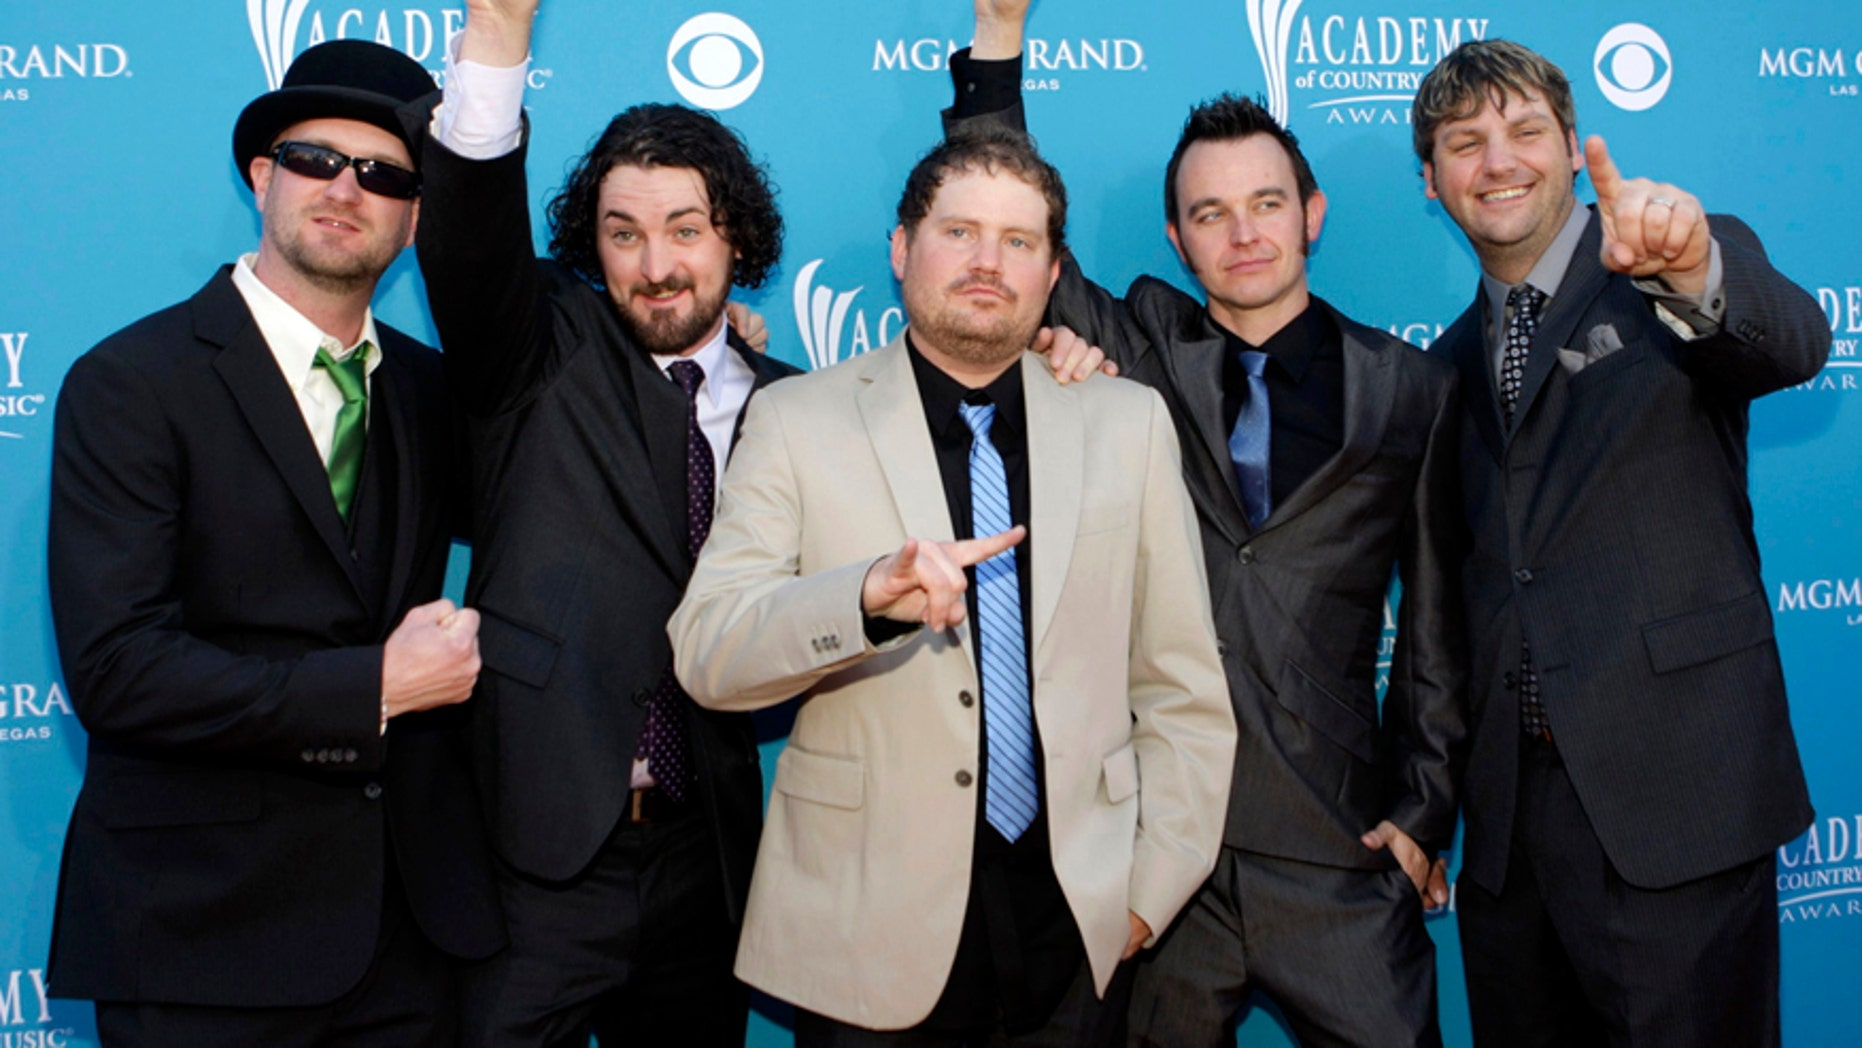 The members of the Randy Rogers Band arrive at the 45th annual Academy of Country Music Awards in Las Vegas, Nevada April 18, 2010.